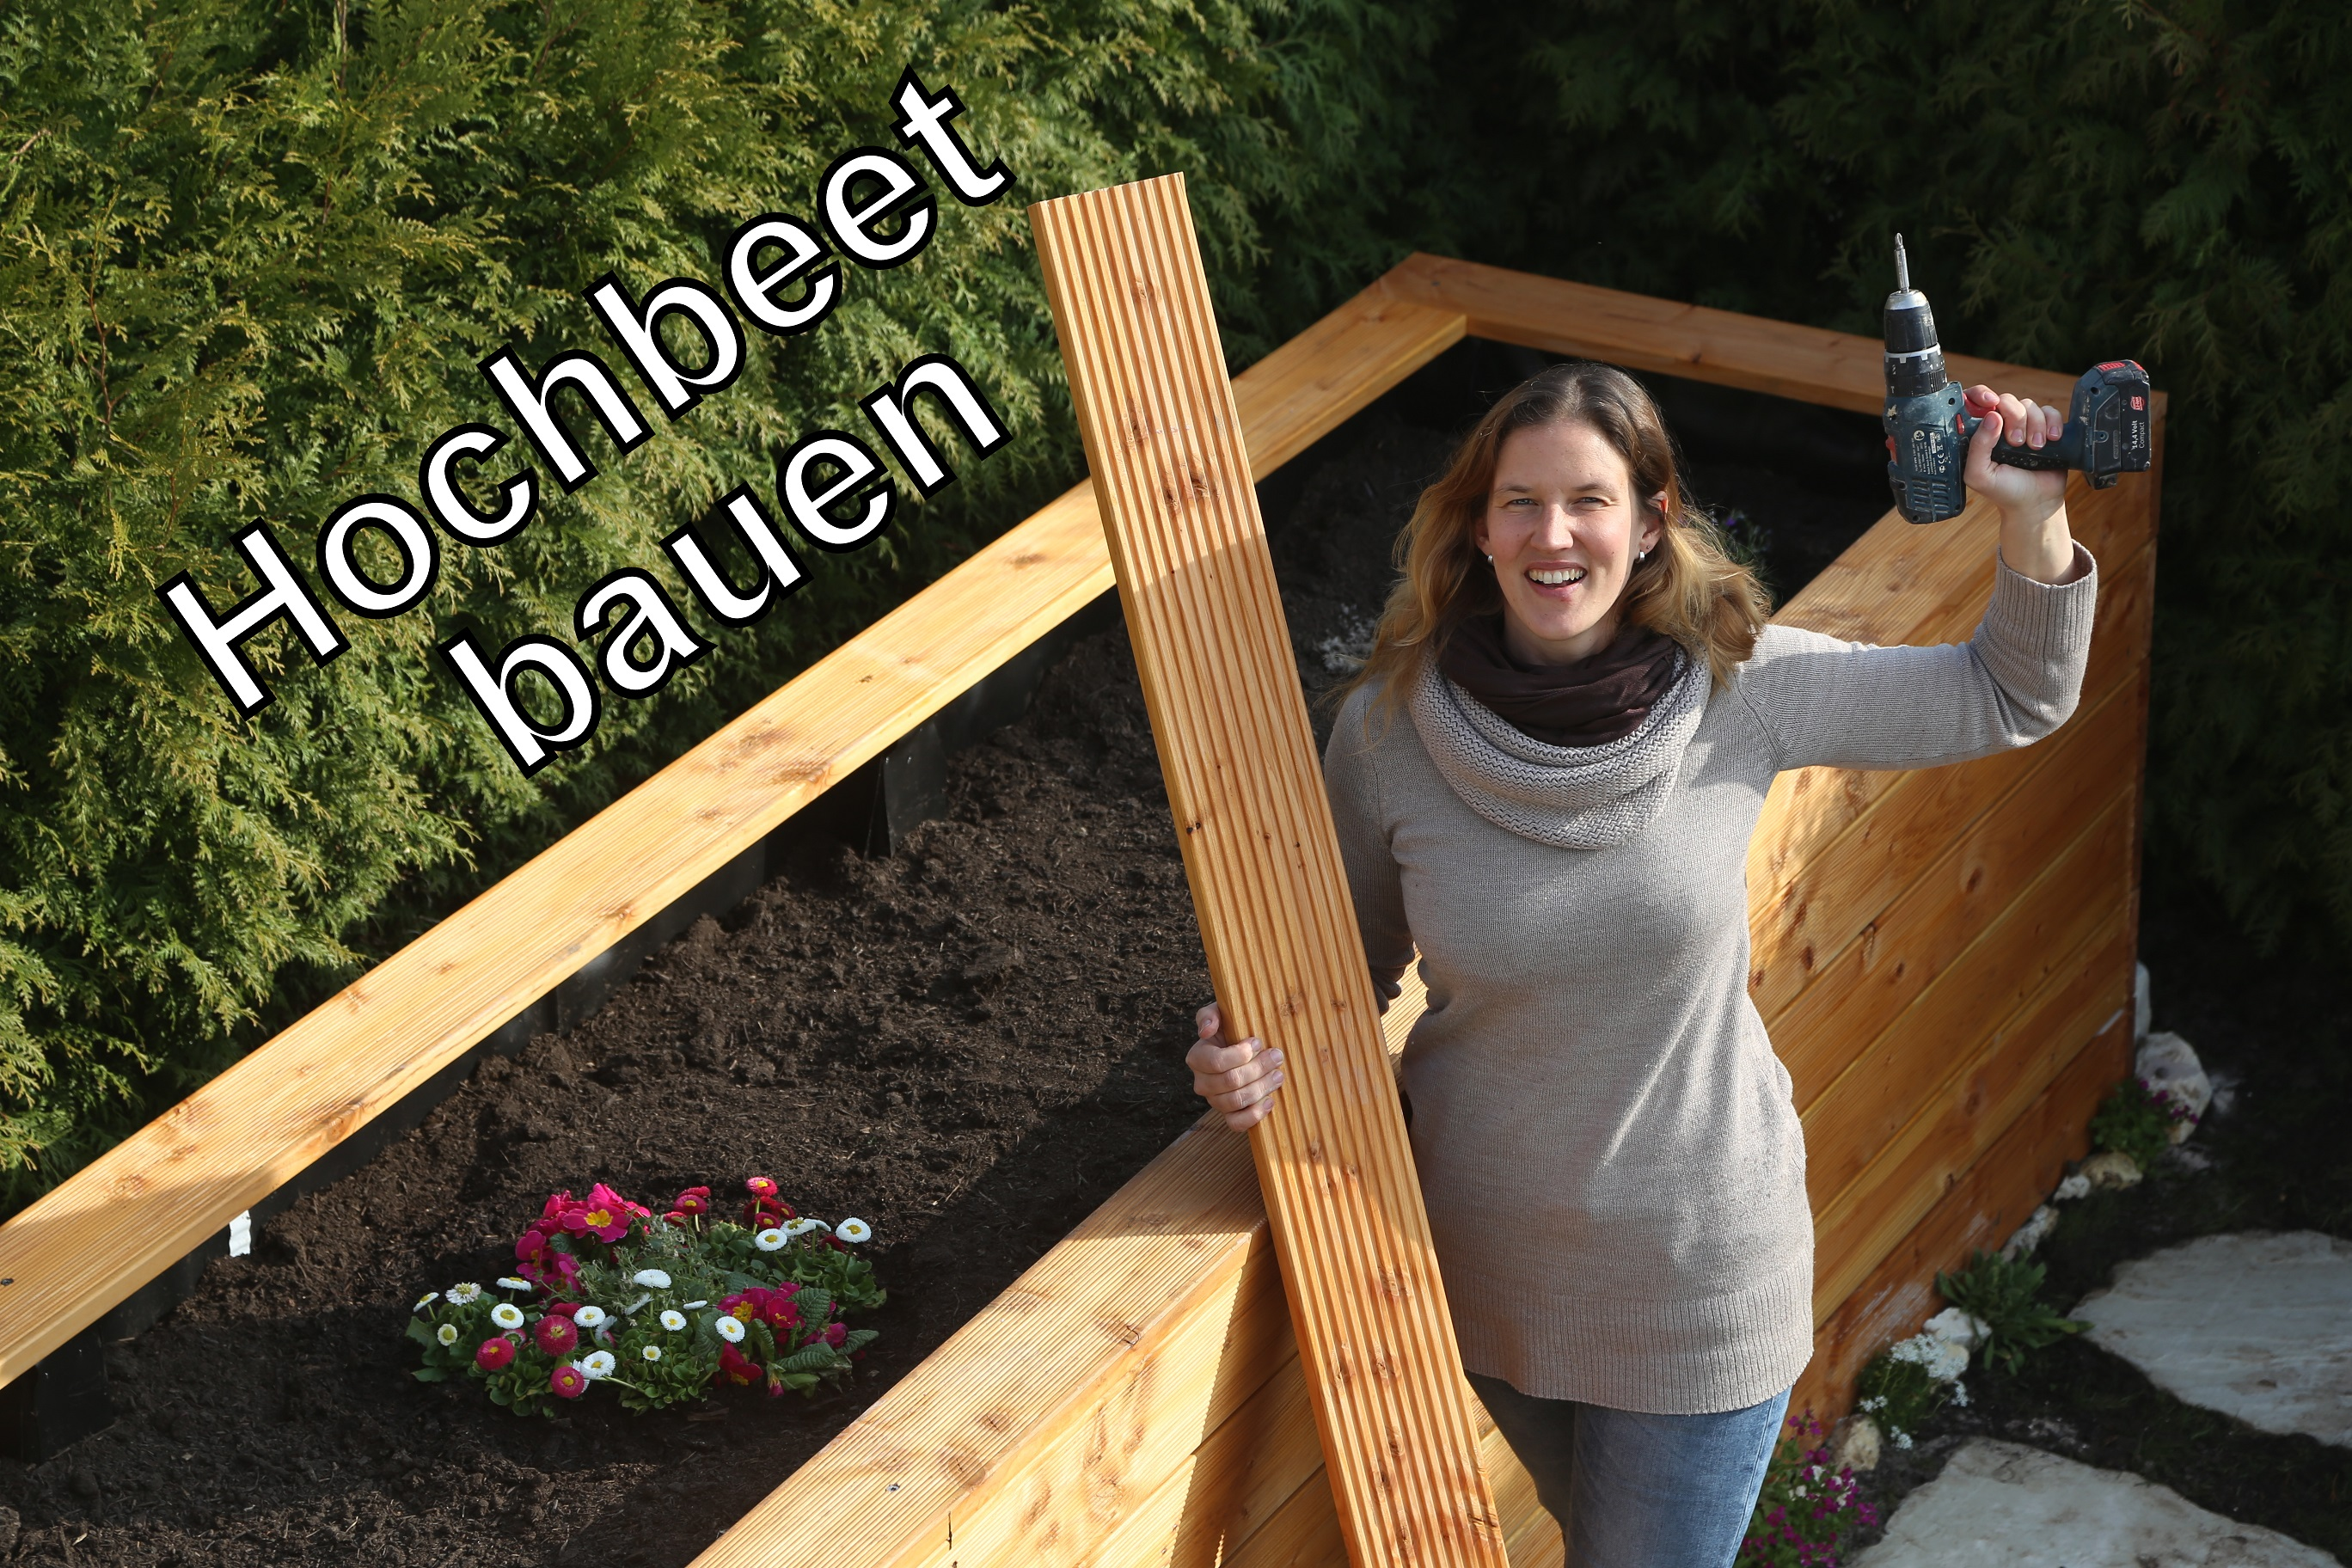 hochbeet selbst bauen userprojekte. Black Bedroom Furniture Sets. Home Design Ideas